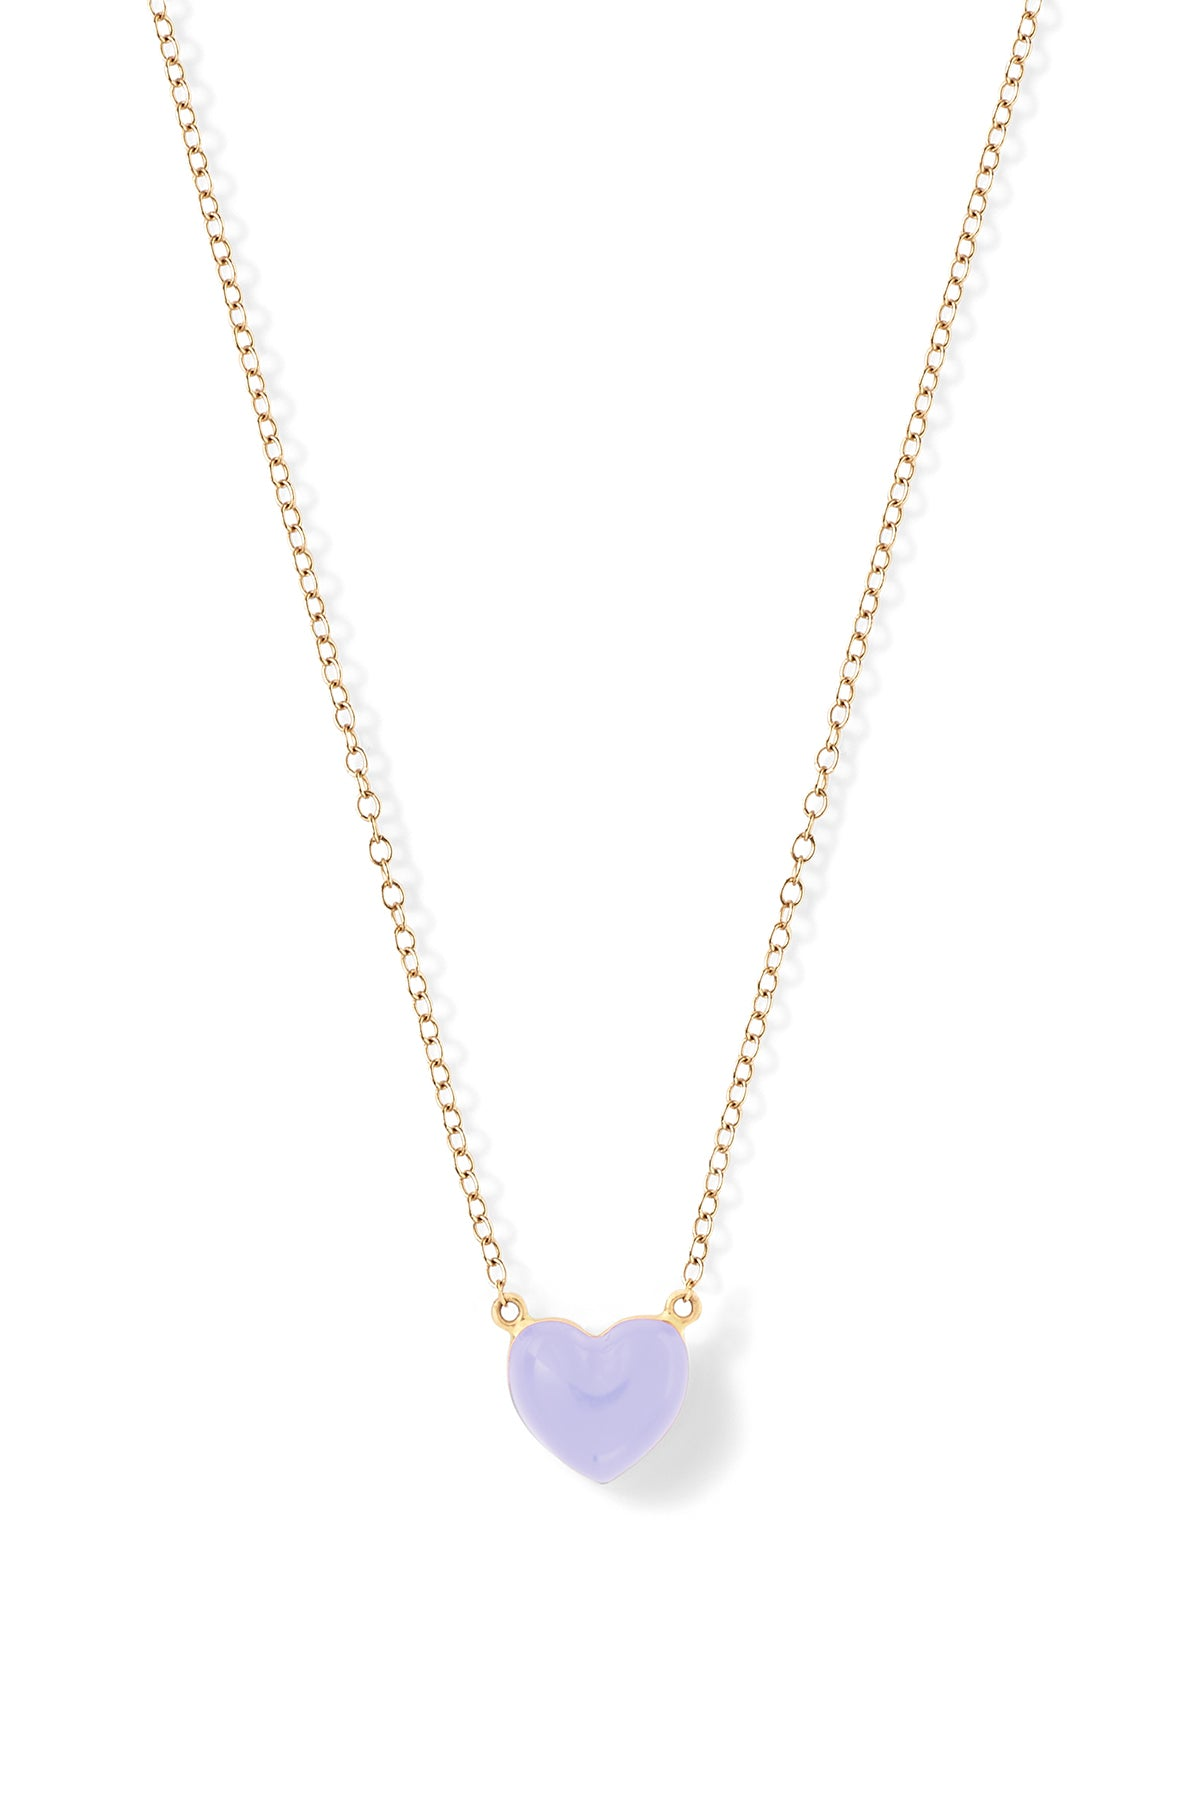 Heart Necklace - In Stock